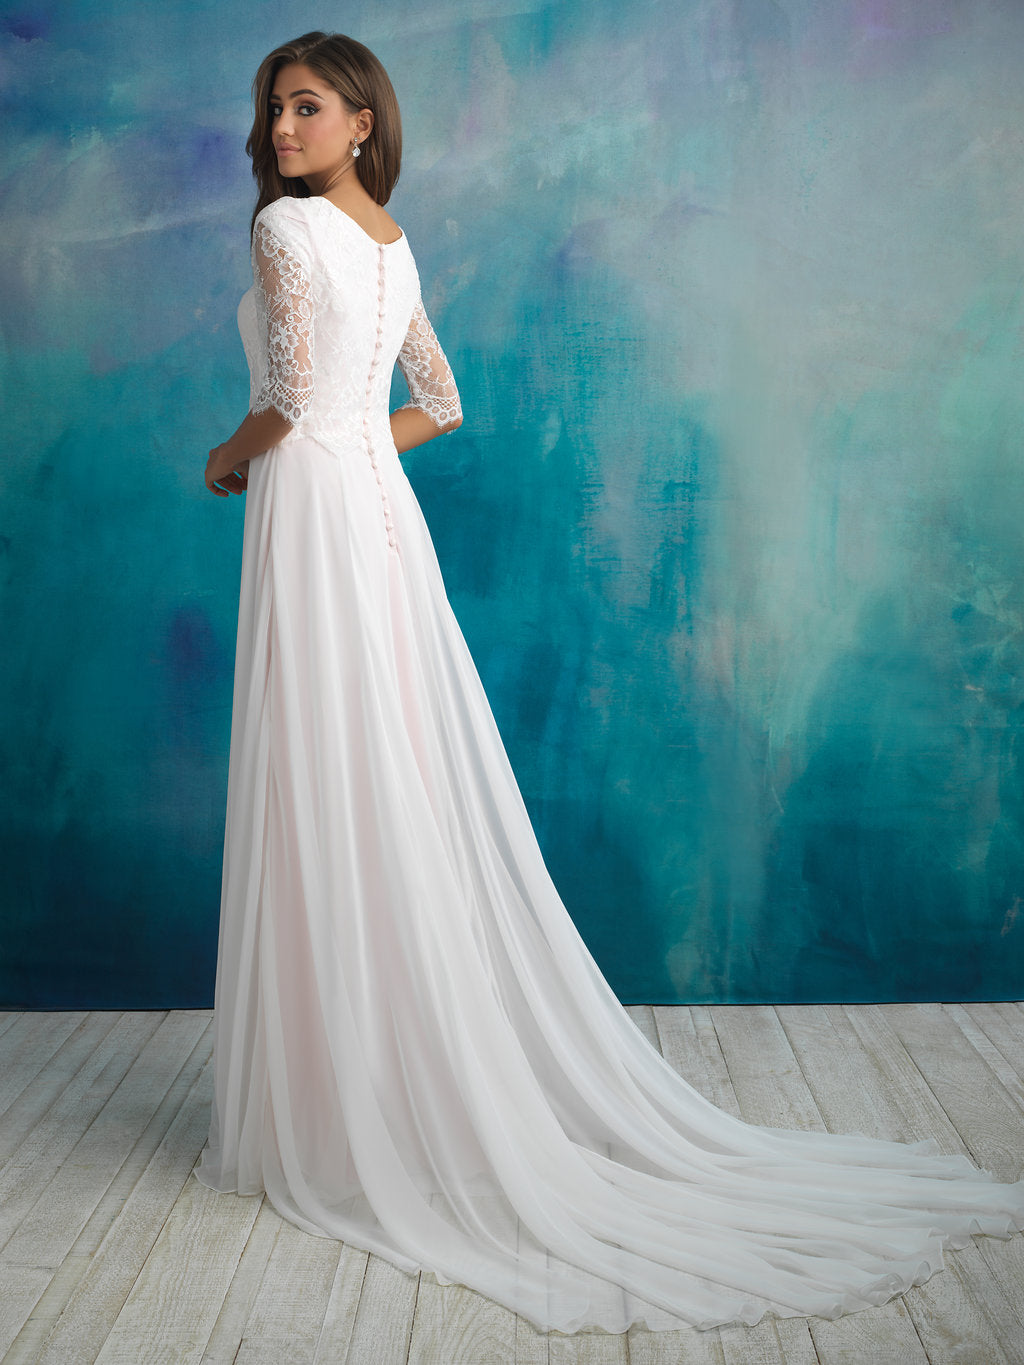 Allure M591 Modest Wedding Dress with sleeves elbow length flowy skirt elegant illusion lace LDS for plus size back